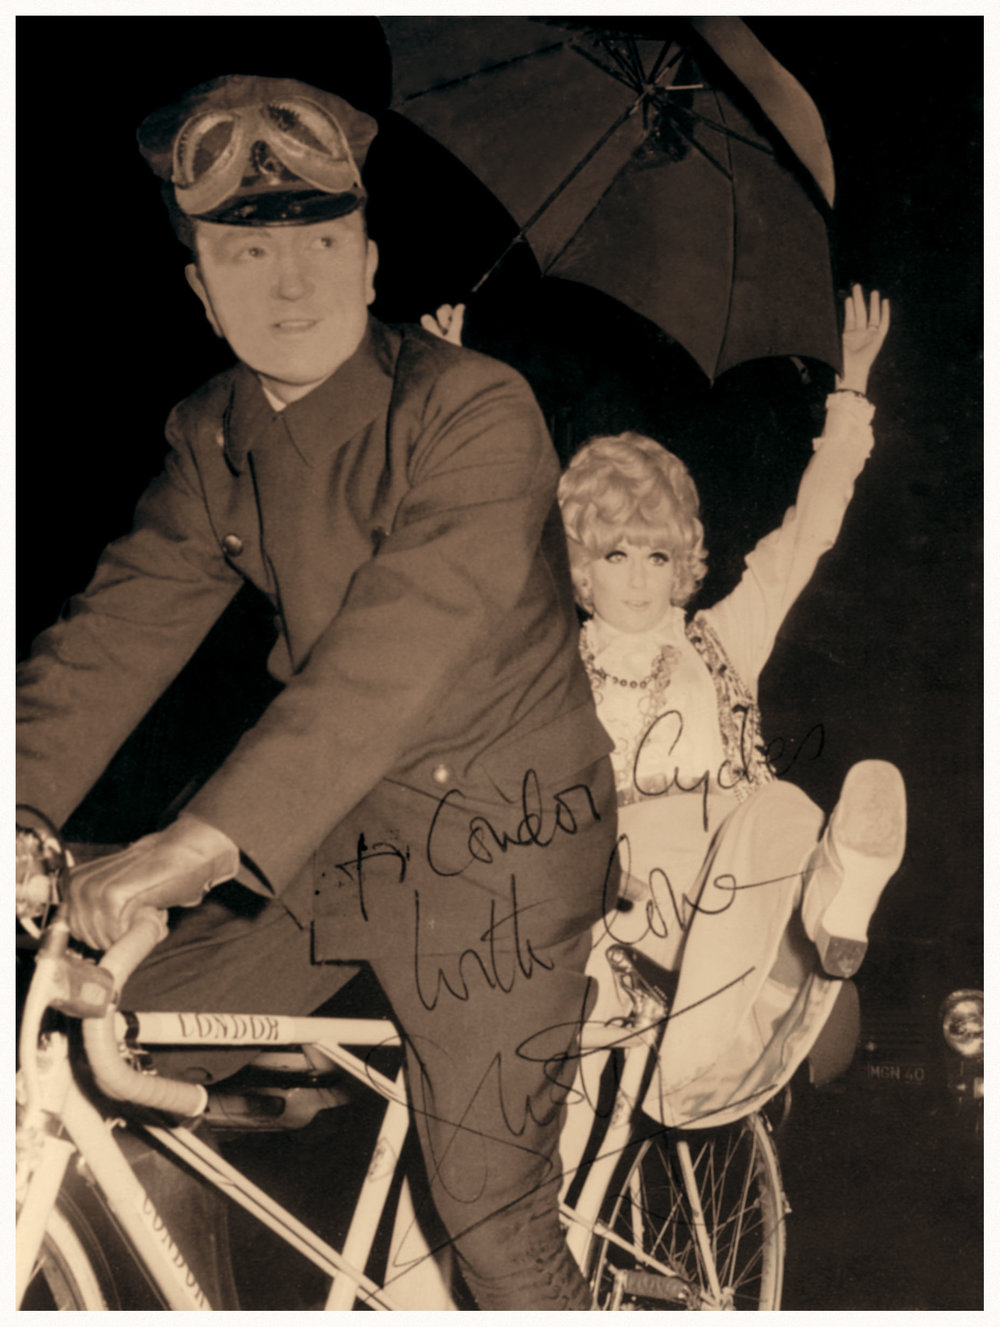 Dusty_Springfield_Alan_Dunn womens cycling.jpg